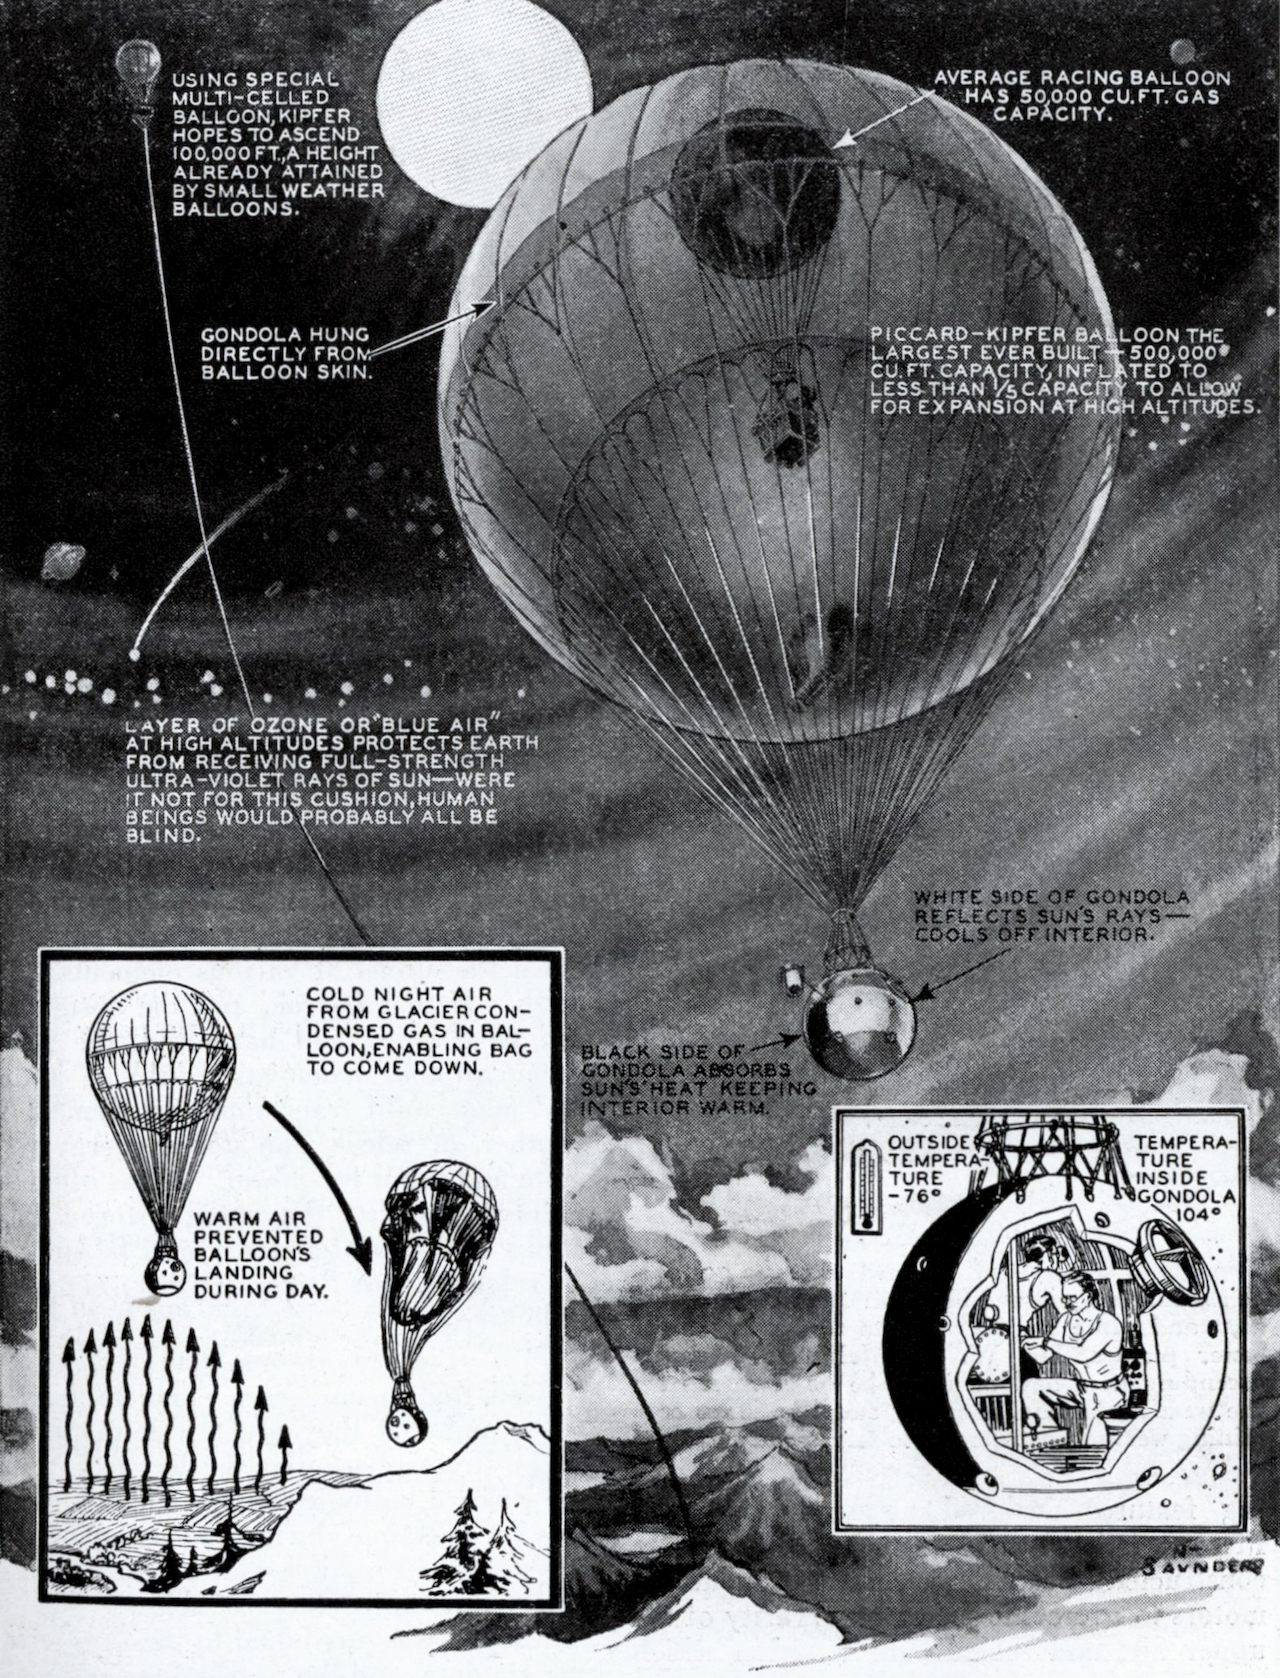 01 - FNRS Balloon to Stratosphere - Auguste Piccard - 1931 - Closed Worlds, 2016 - Lydia Kallipoliti - Storefront for Art and Architecture